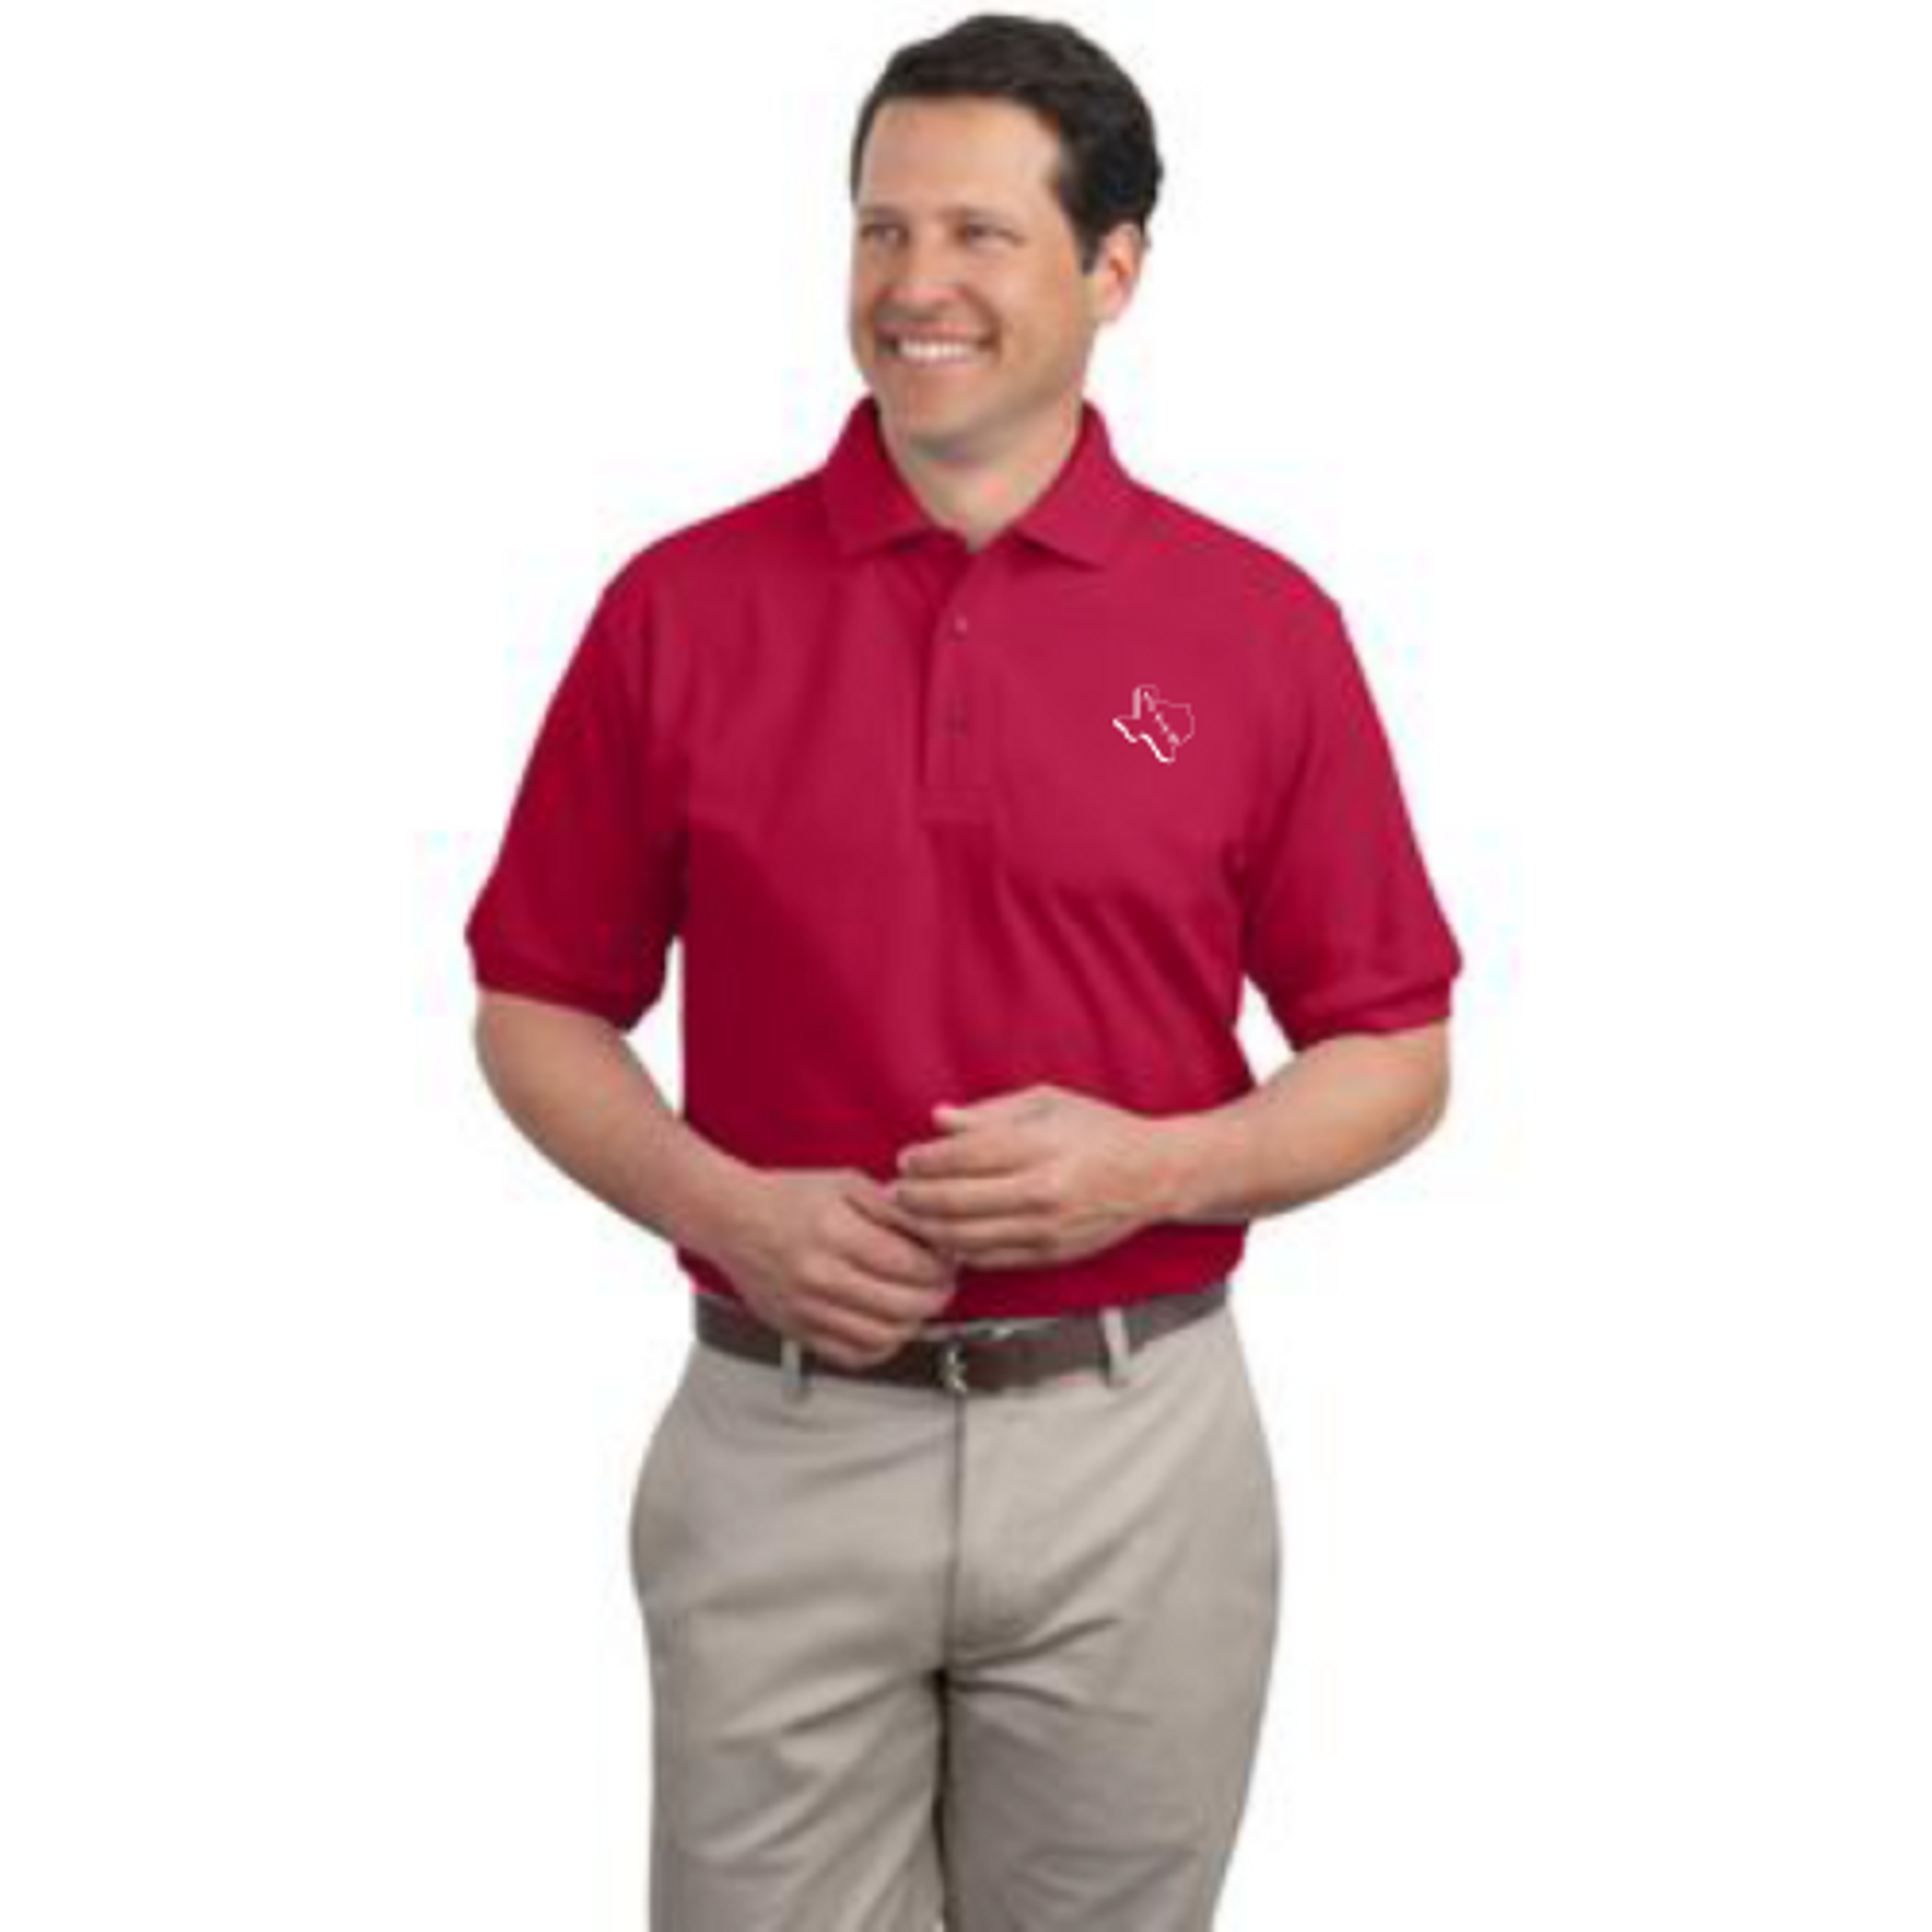 ATSSB Men's Performance Polo